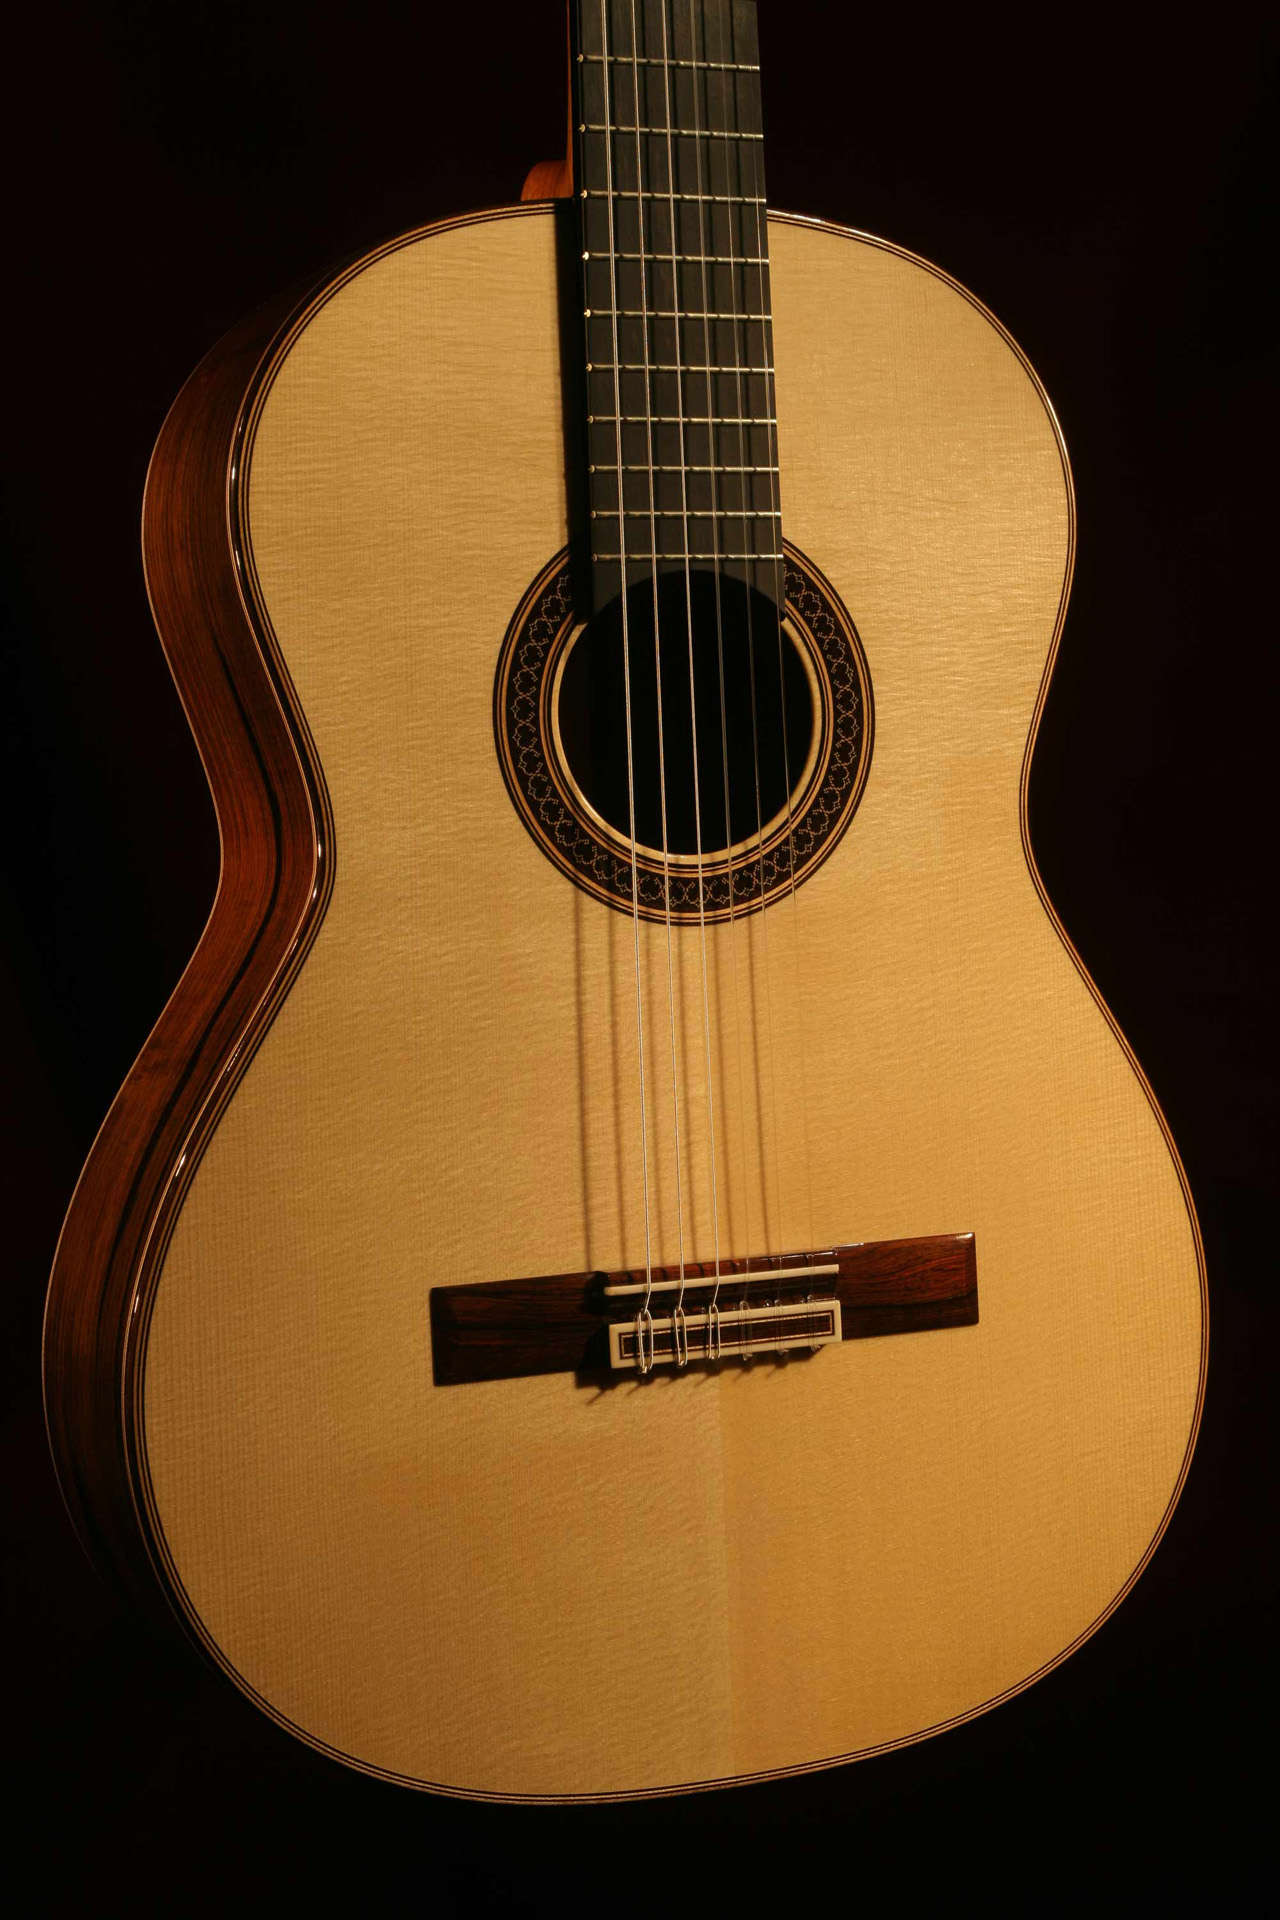 Brazilian Rosewood and Engelmann Spruce Guitar - Front - Close Up